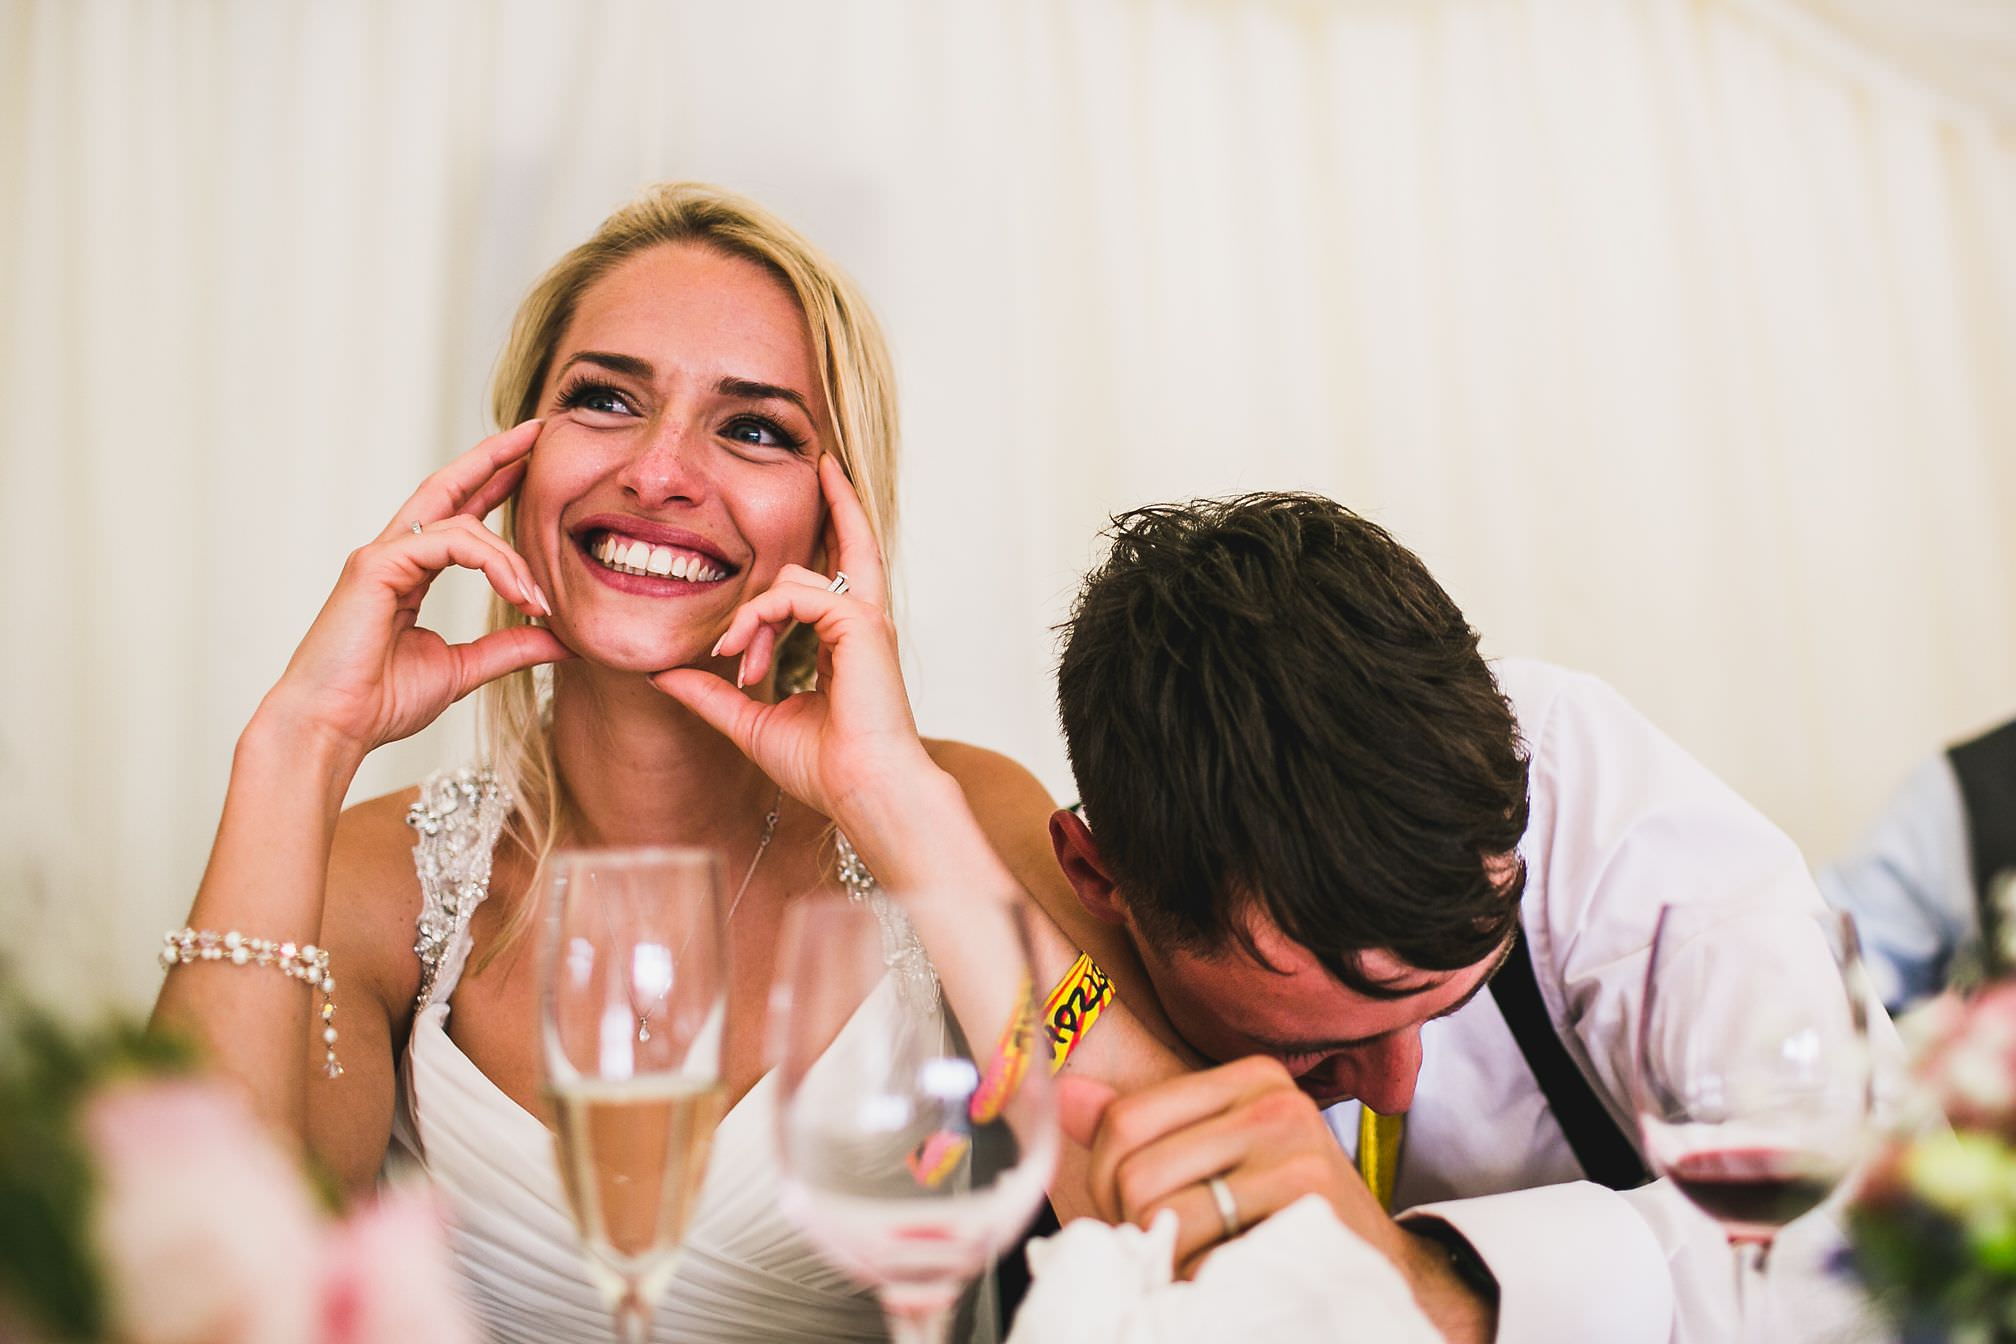 MyWed Editors Choice - Bride Laughing during Speeches